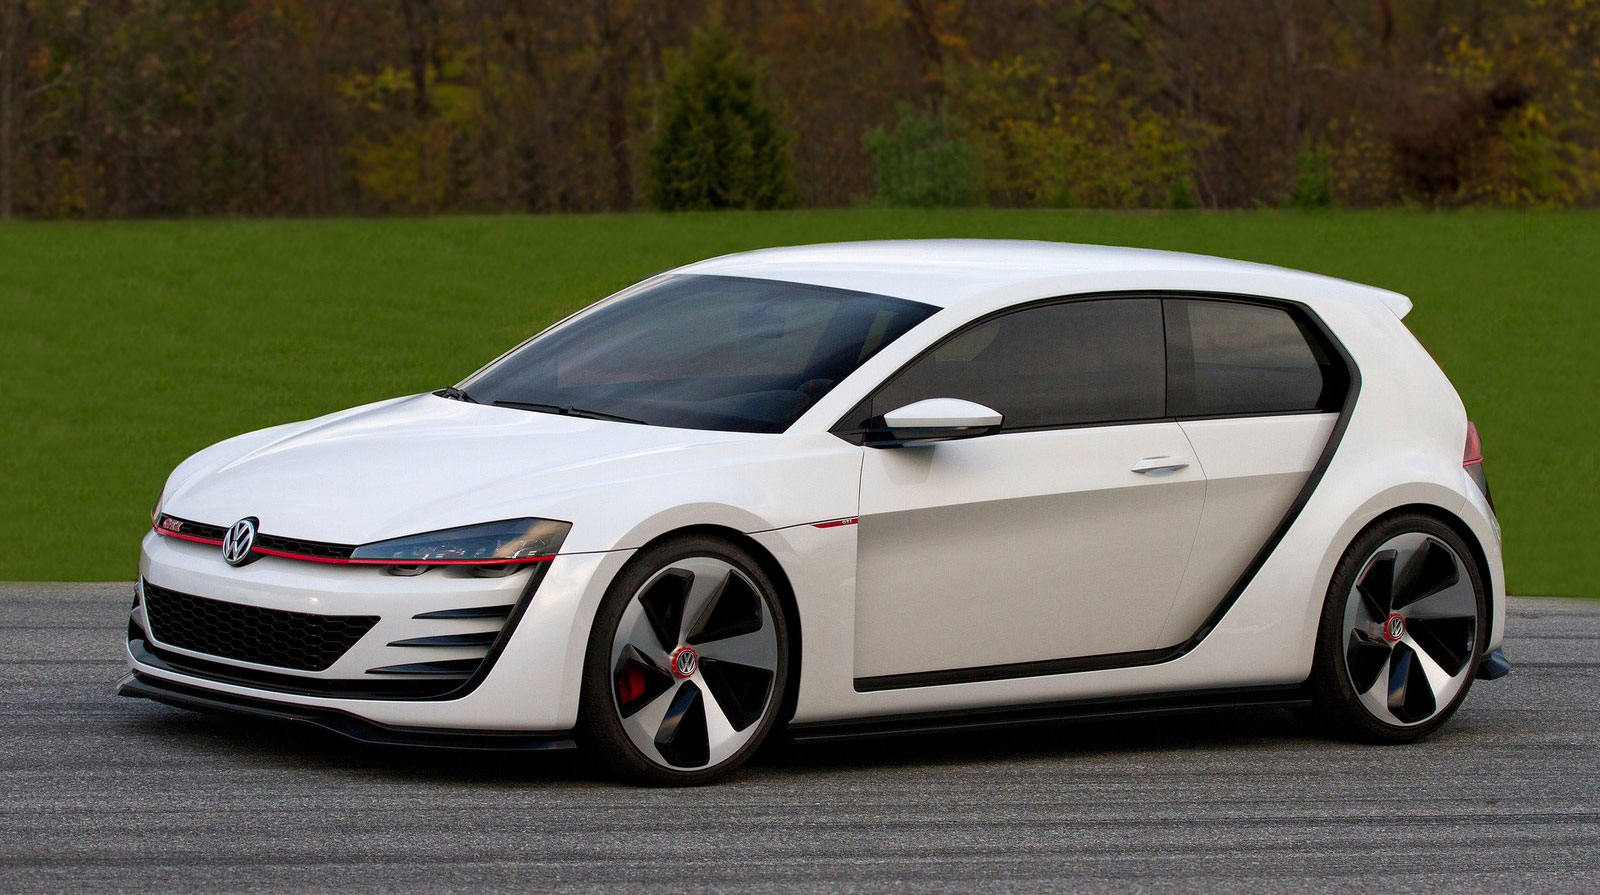 Golf 8 2018 >> GALLERY: Volkswagen Design Vision GTI Concept Paul Tan - Image 215076